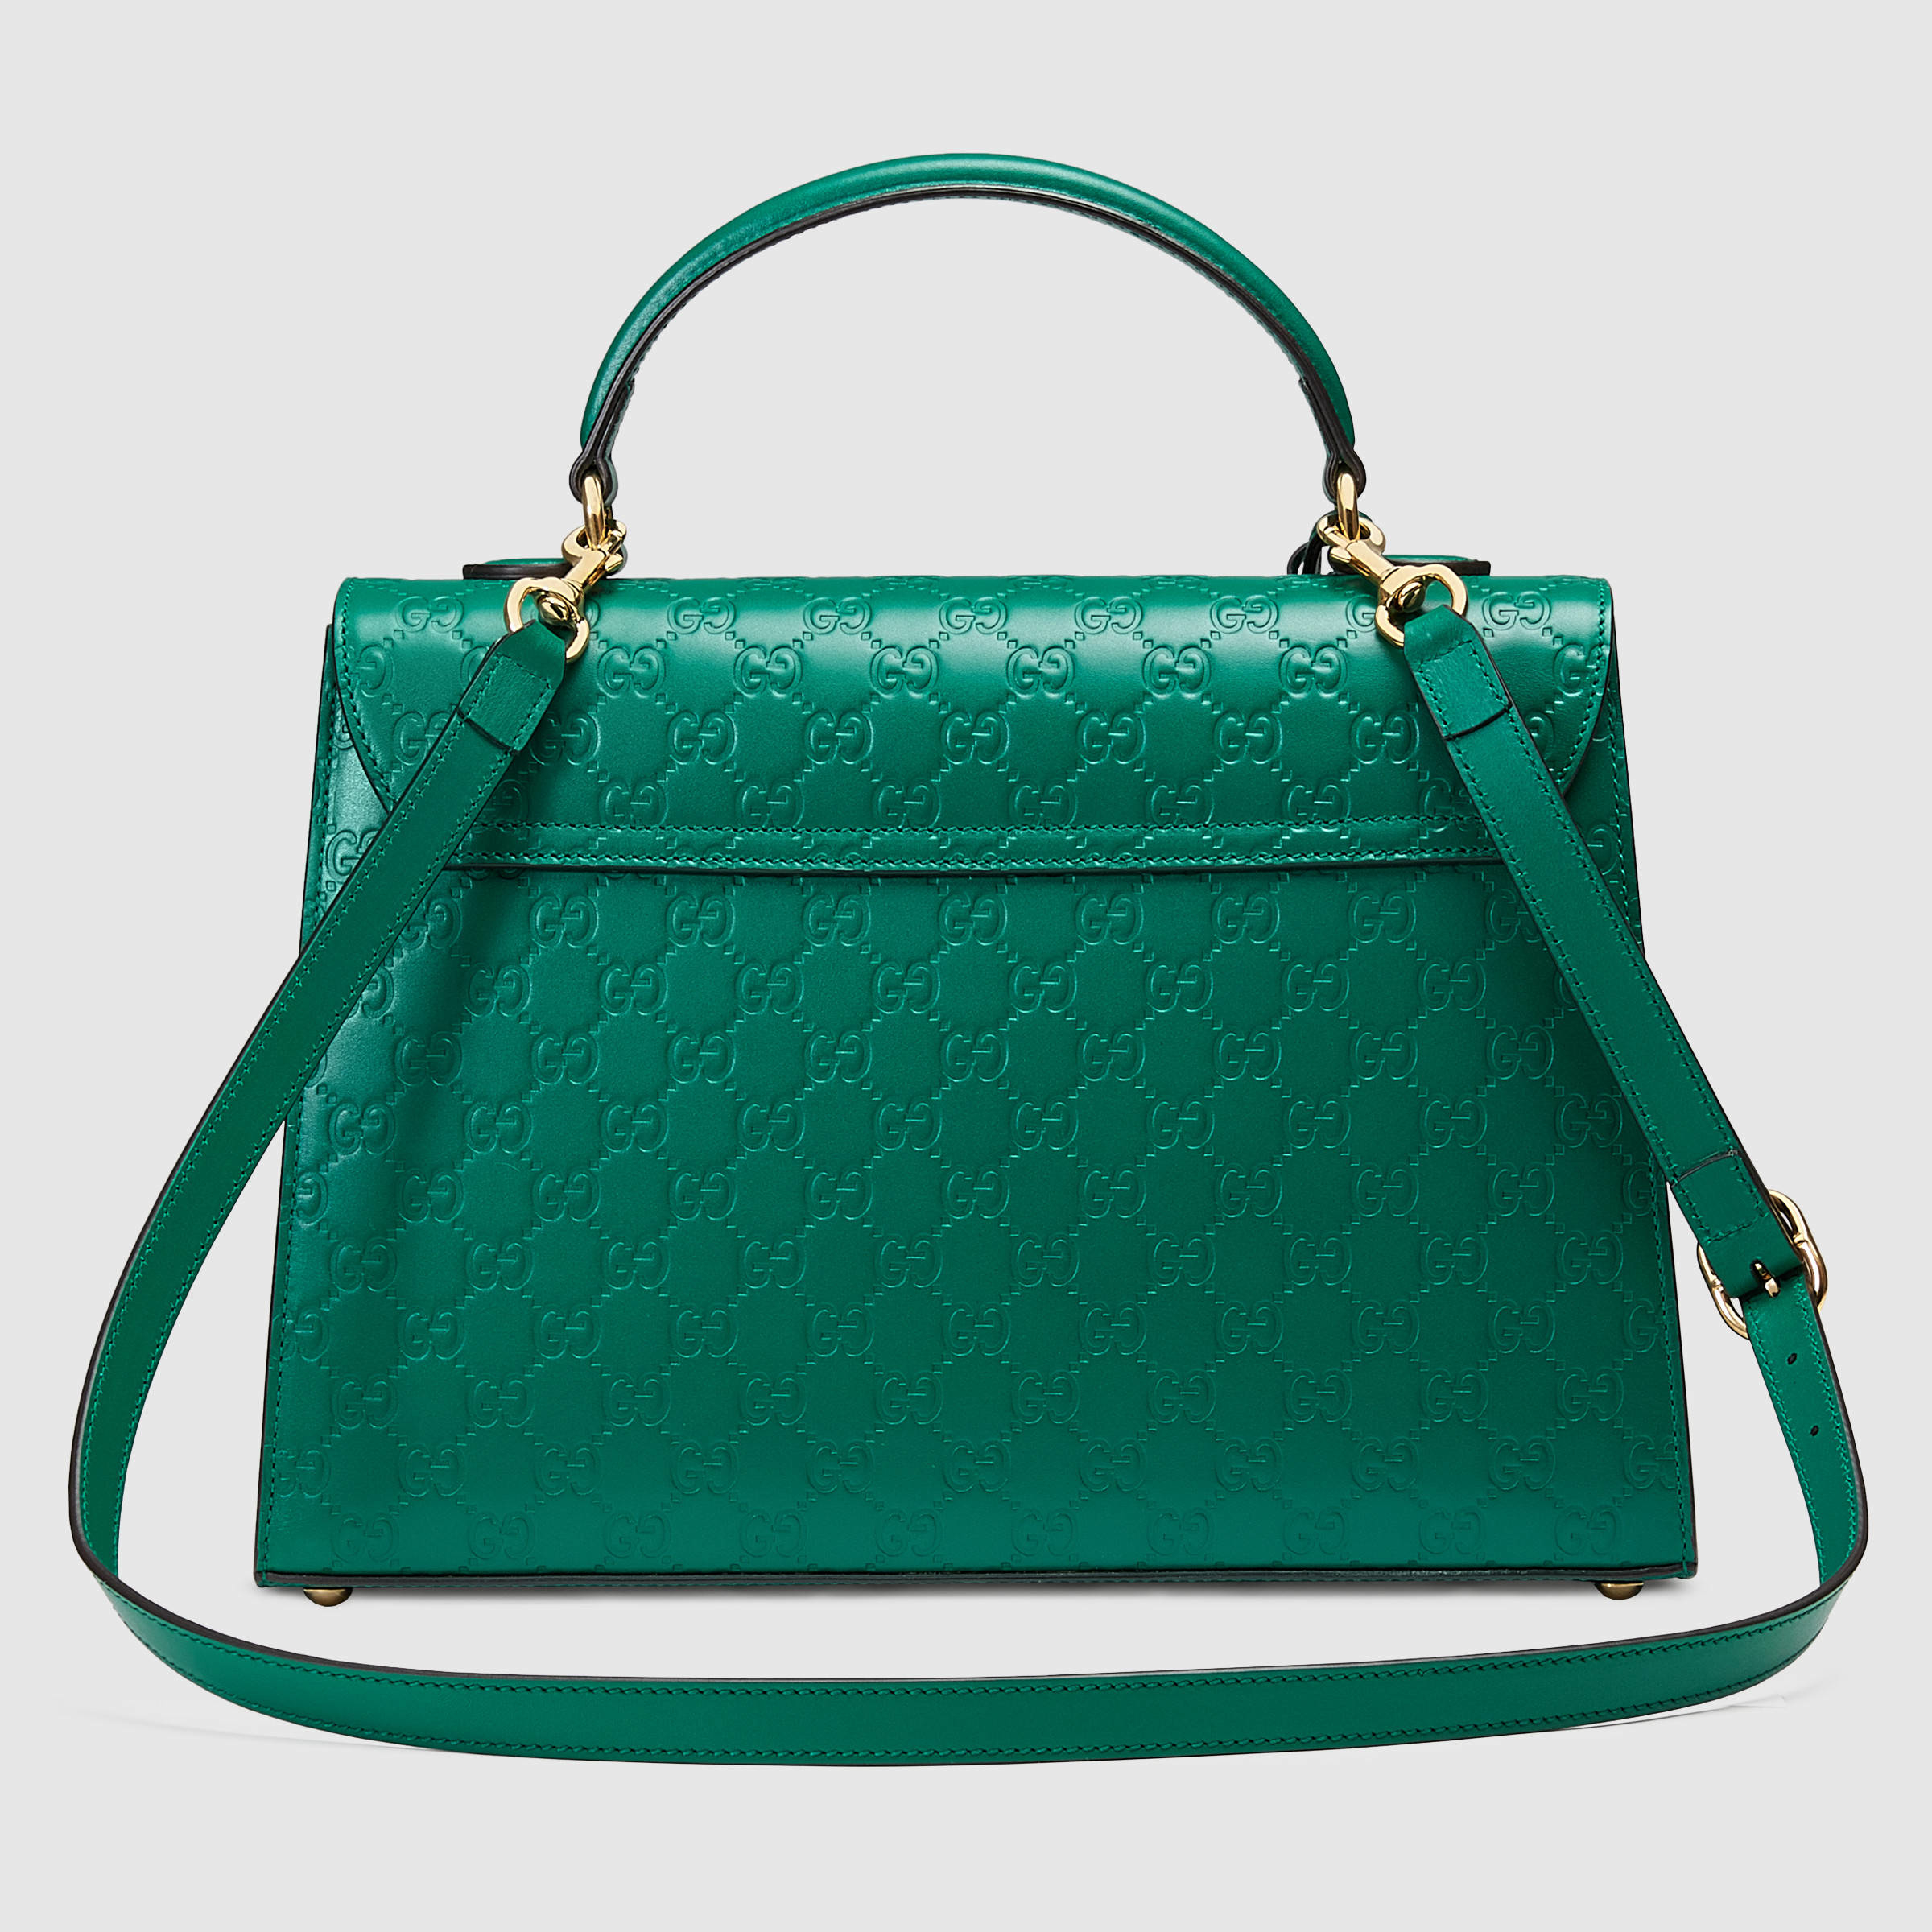 Gucci Padlock Signature Top Handle Leather Bag in Green | Lyst